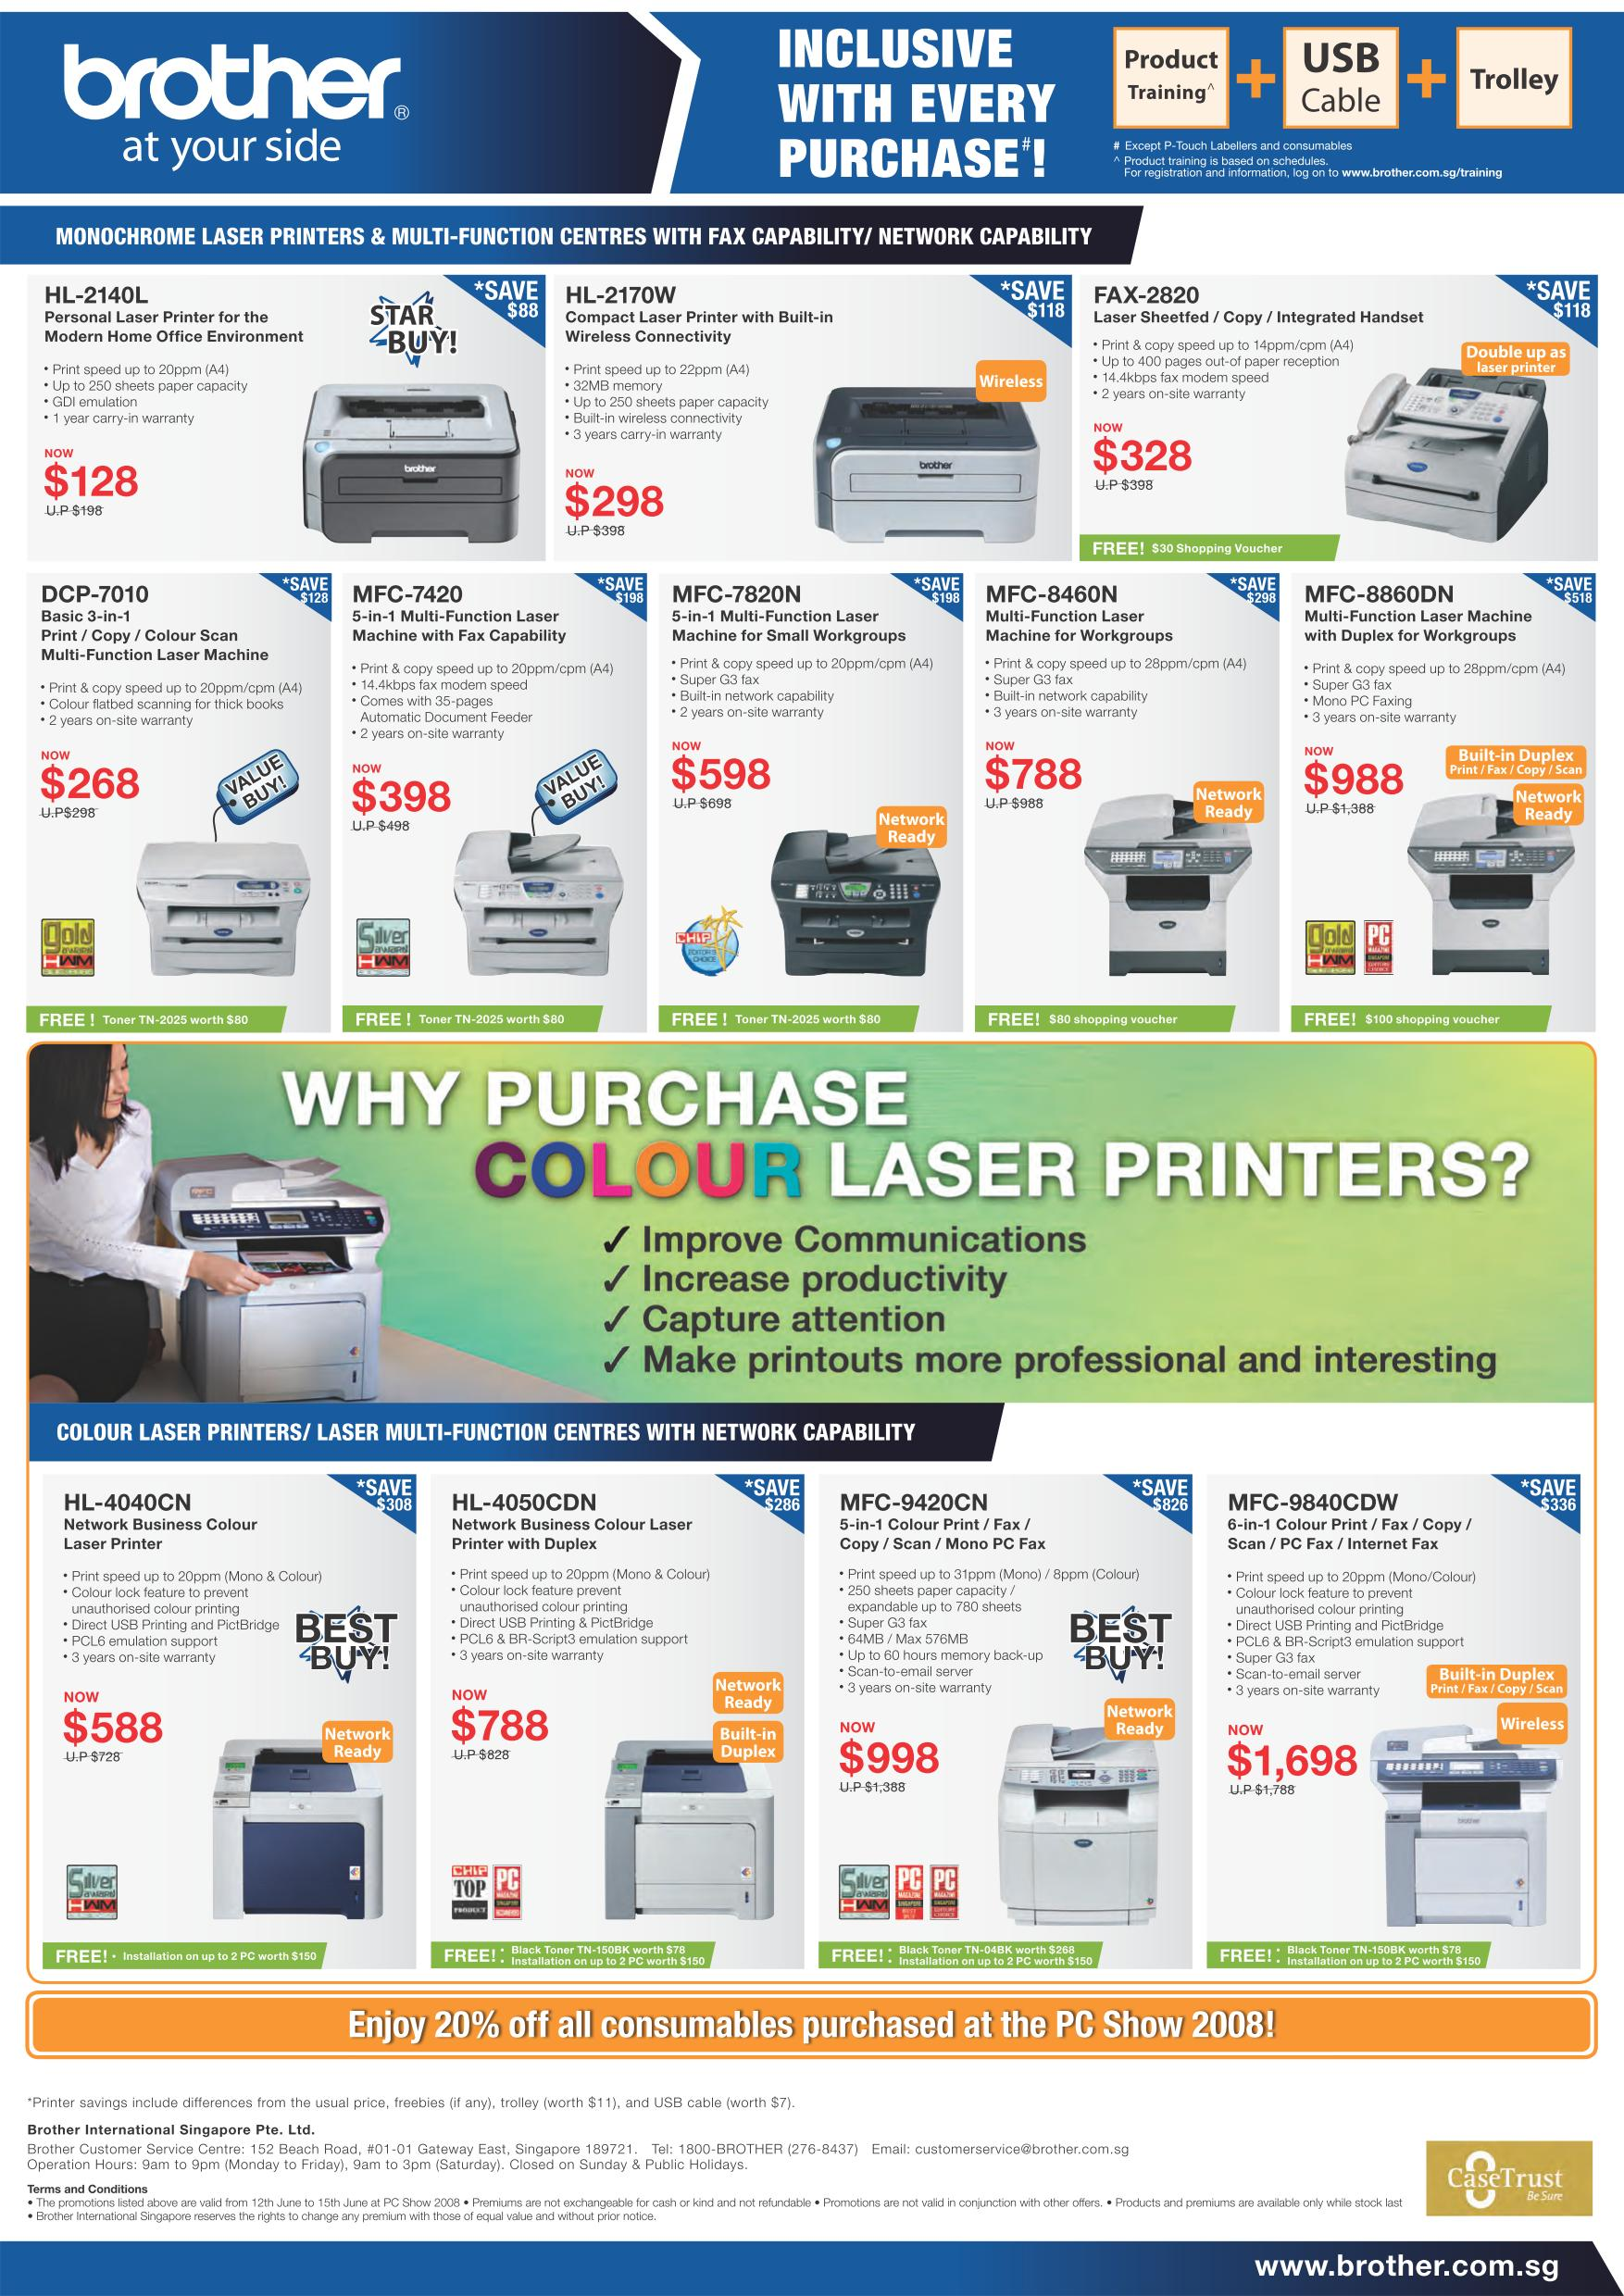 PC Show 2008 price list image brochure of Brother Printers Show.pdf 02